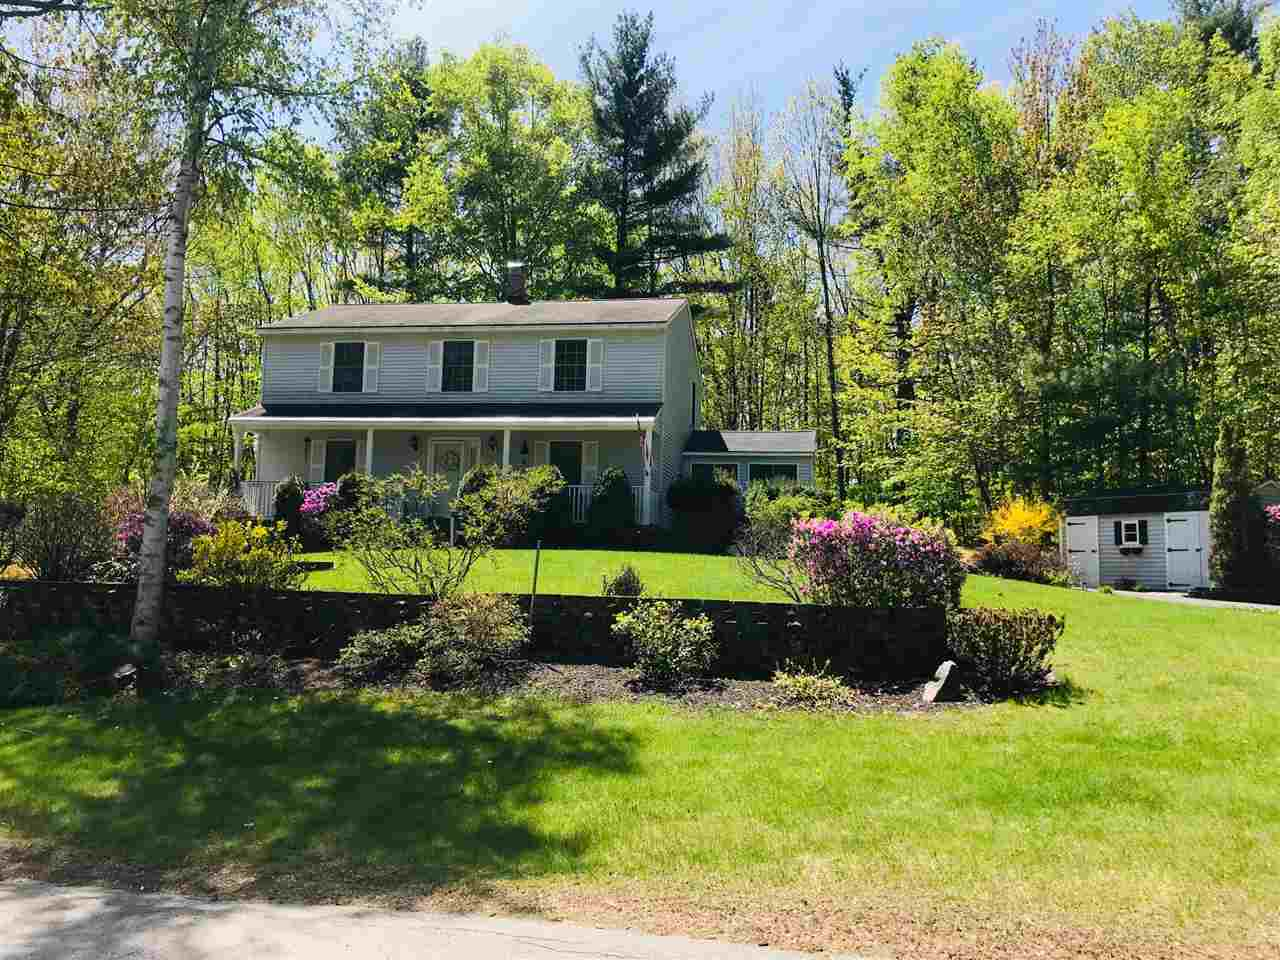 Photo of 93 Hillcrest Drive Laconia NH 03246